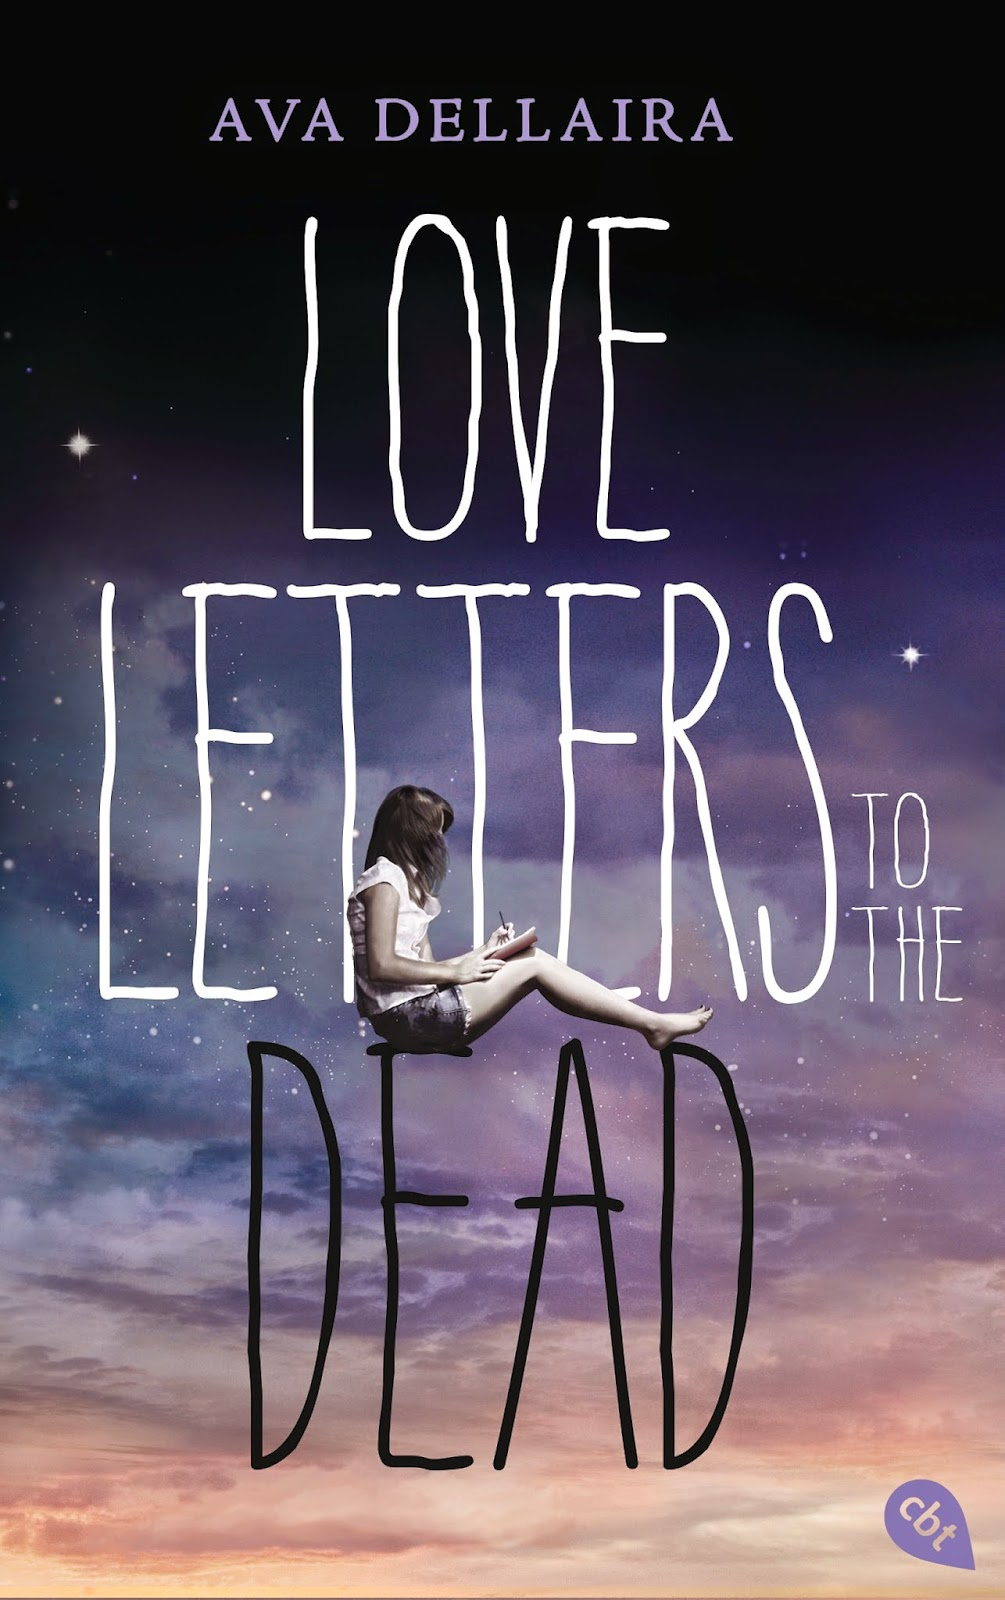 http://www.amazon.de/Love-Letters-Dead-Ava-Dellaira/dp/3570163148/ref=sr_1_5_twi_2?ie=UTF8&qid=1421507451&sr=8-5&keywords=love+letter+to+the+dead